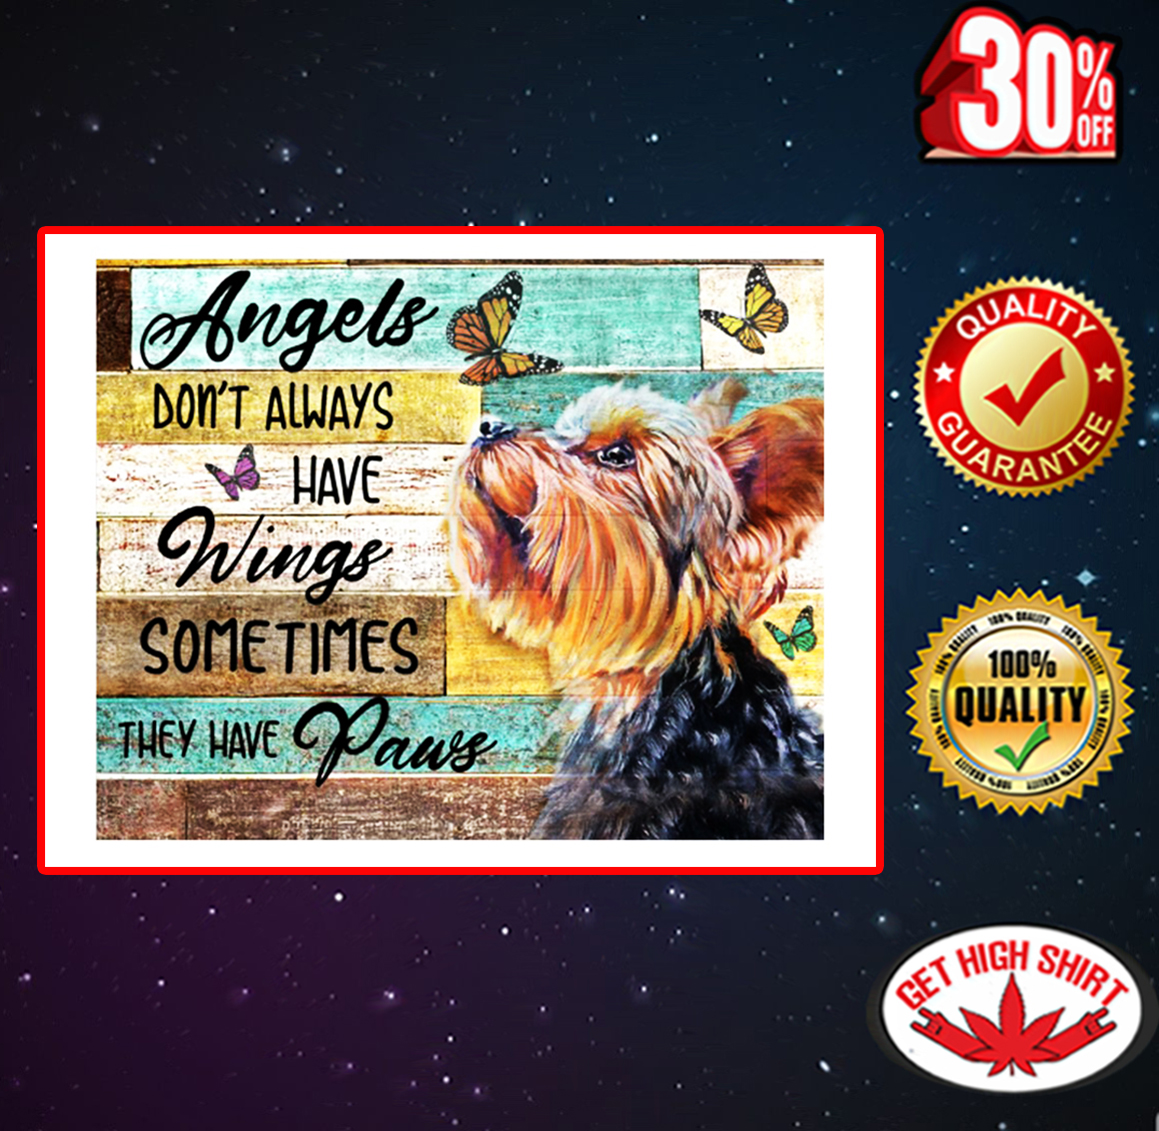 Yorkie Angels don't always have wings sometimes they have paus poster 24x26